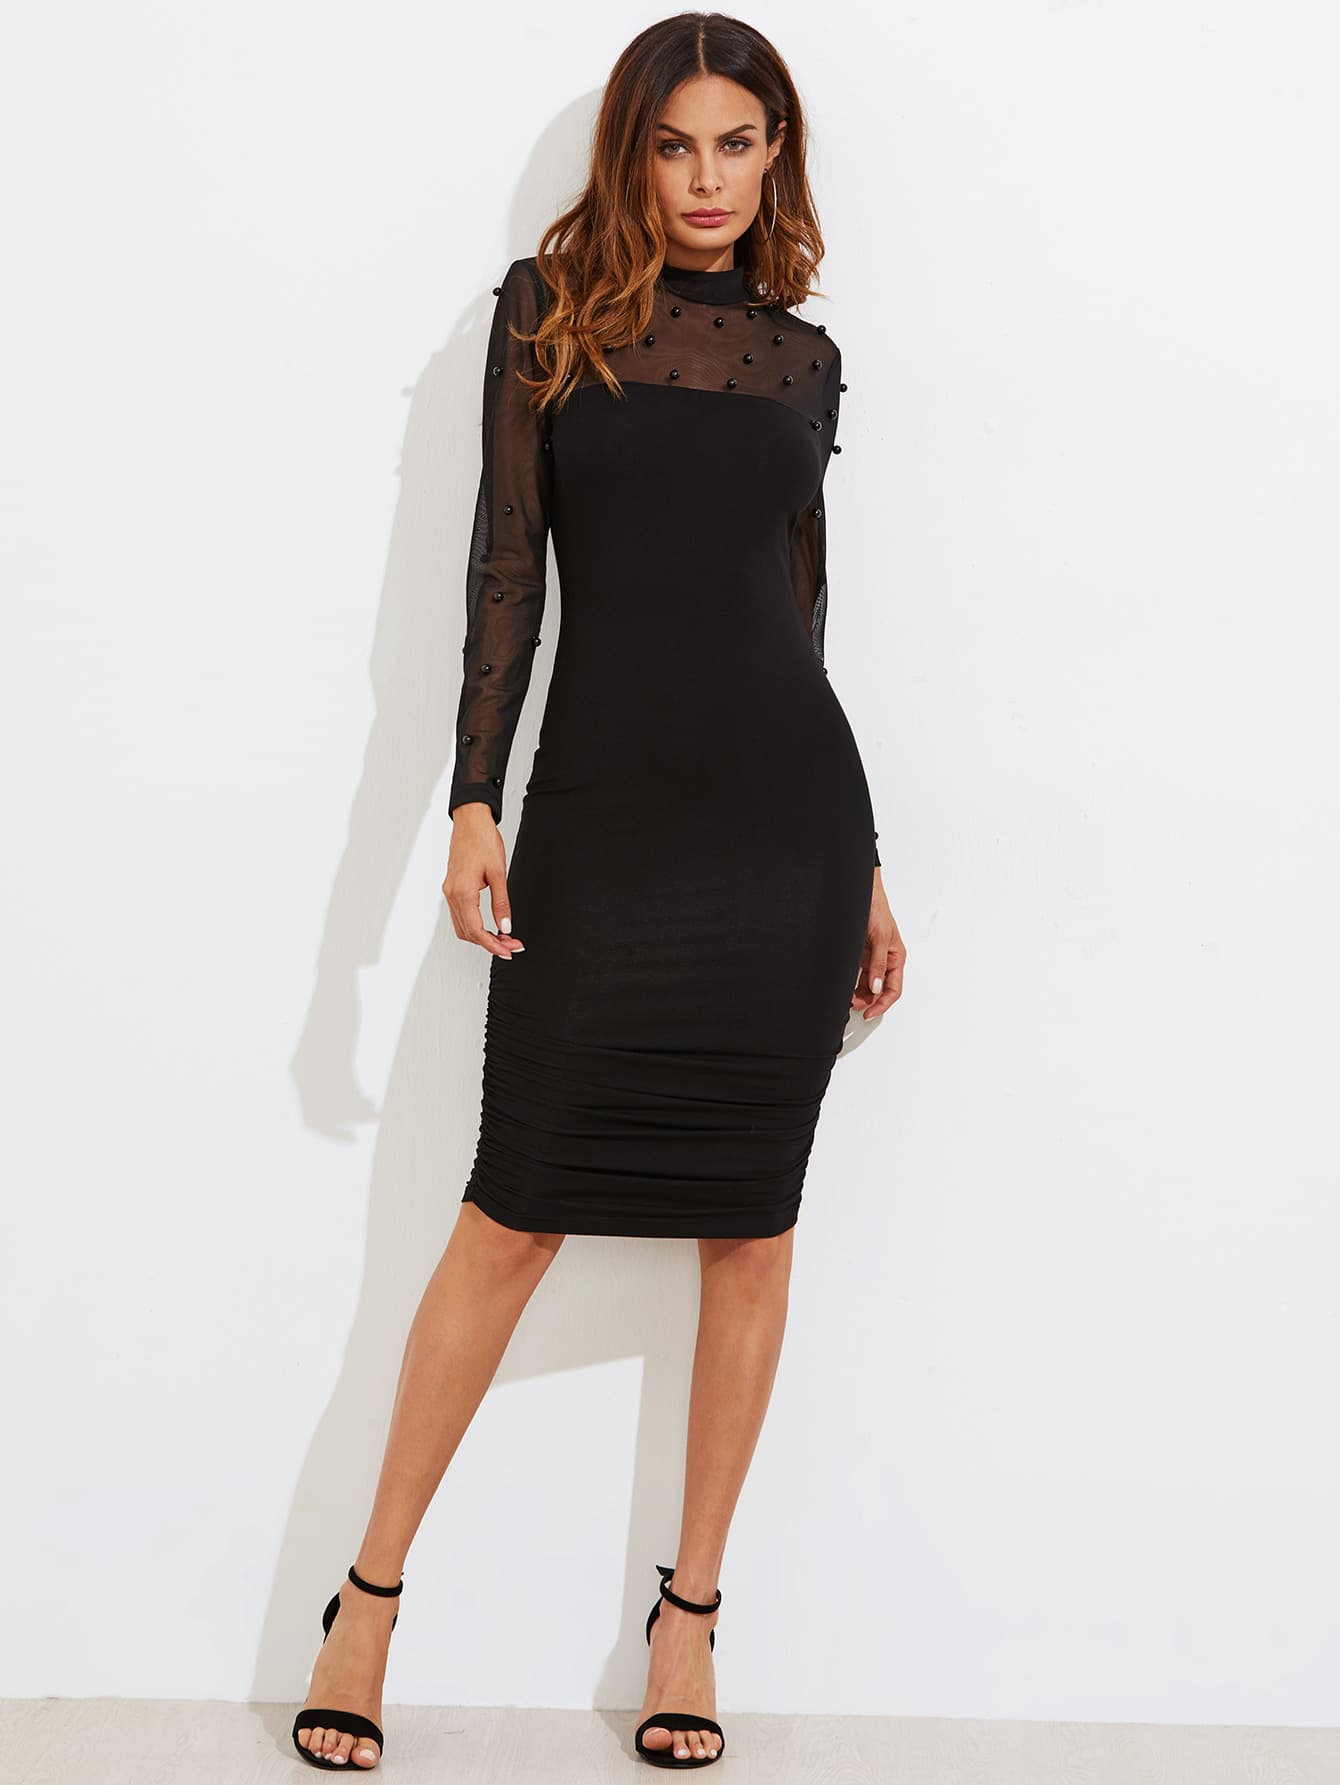 Pearl Beaded Mesh Yoke Ruched Form Fitting Dress calvin klein women s textured beaded ruched jersey dress 4 black